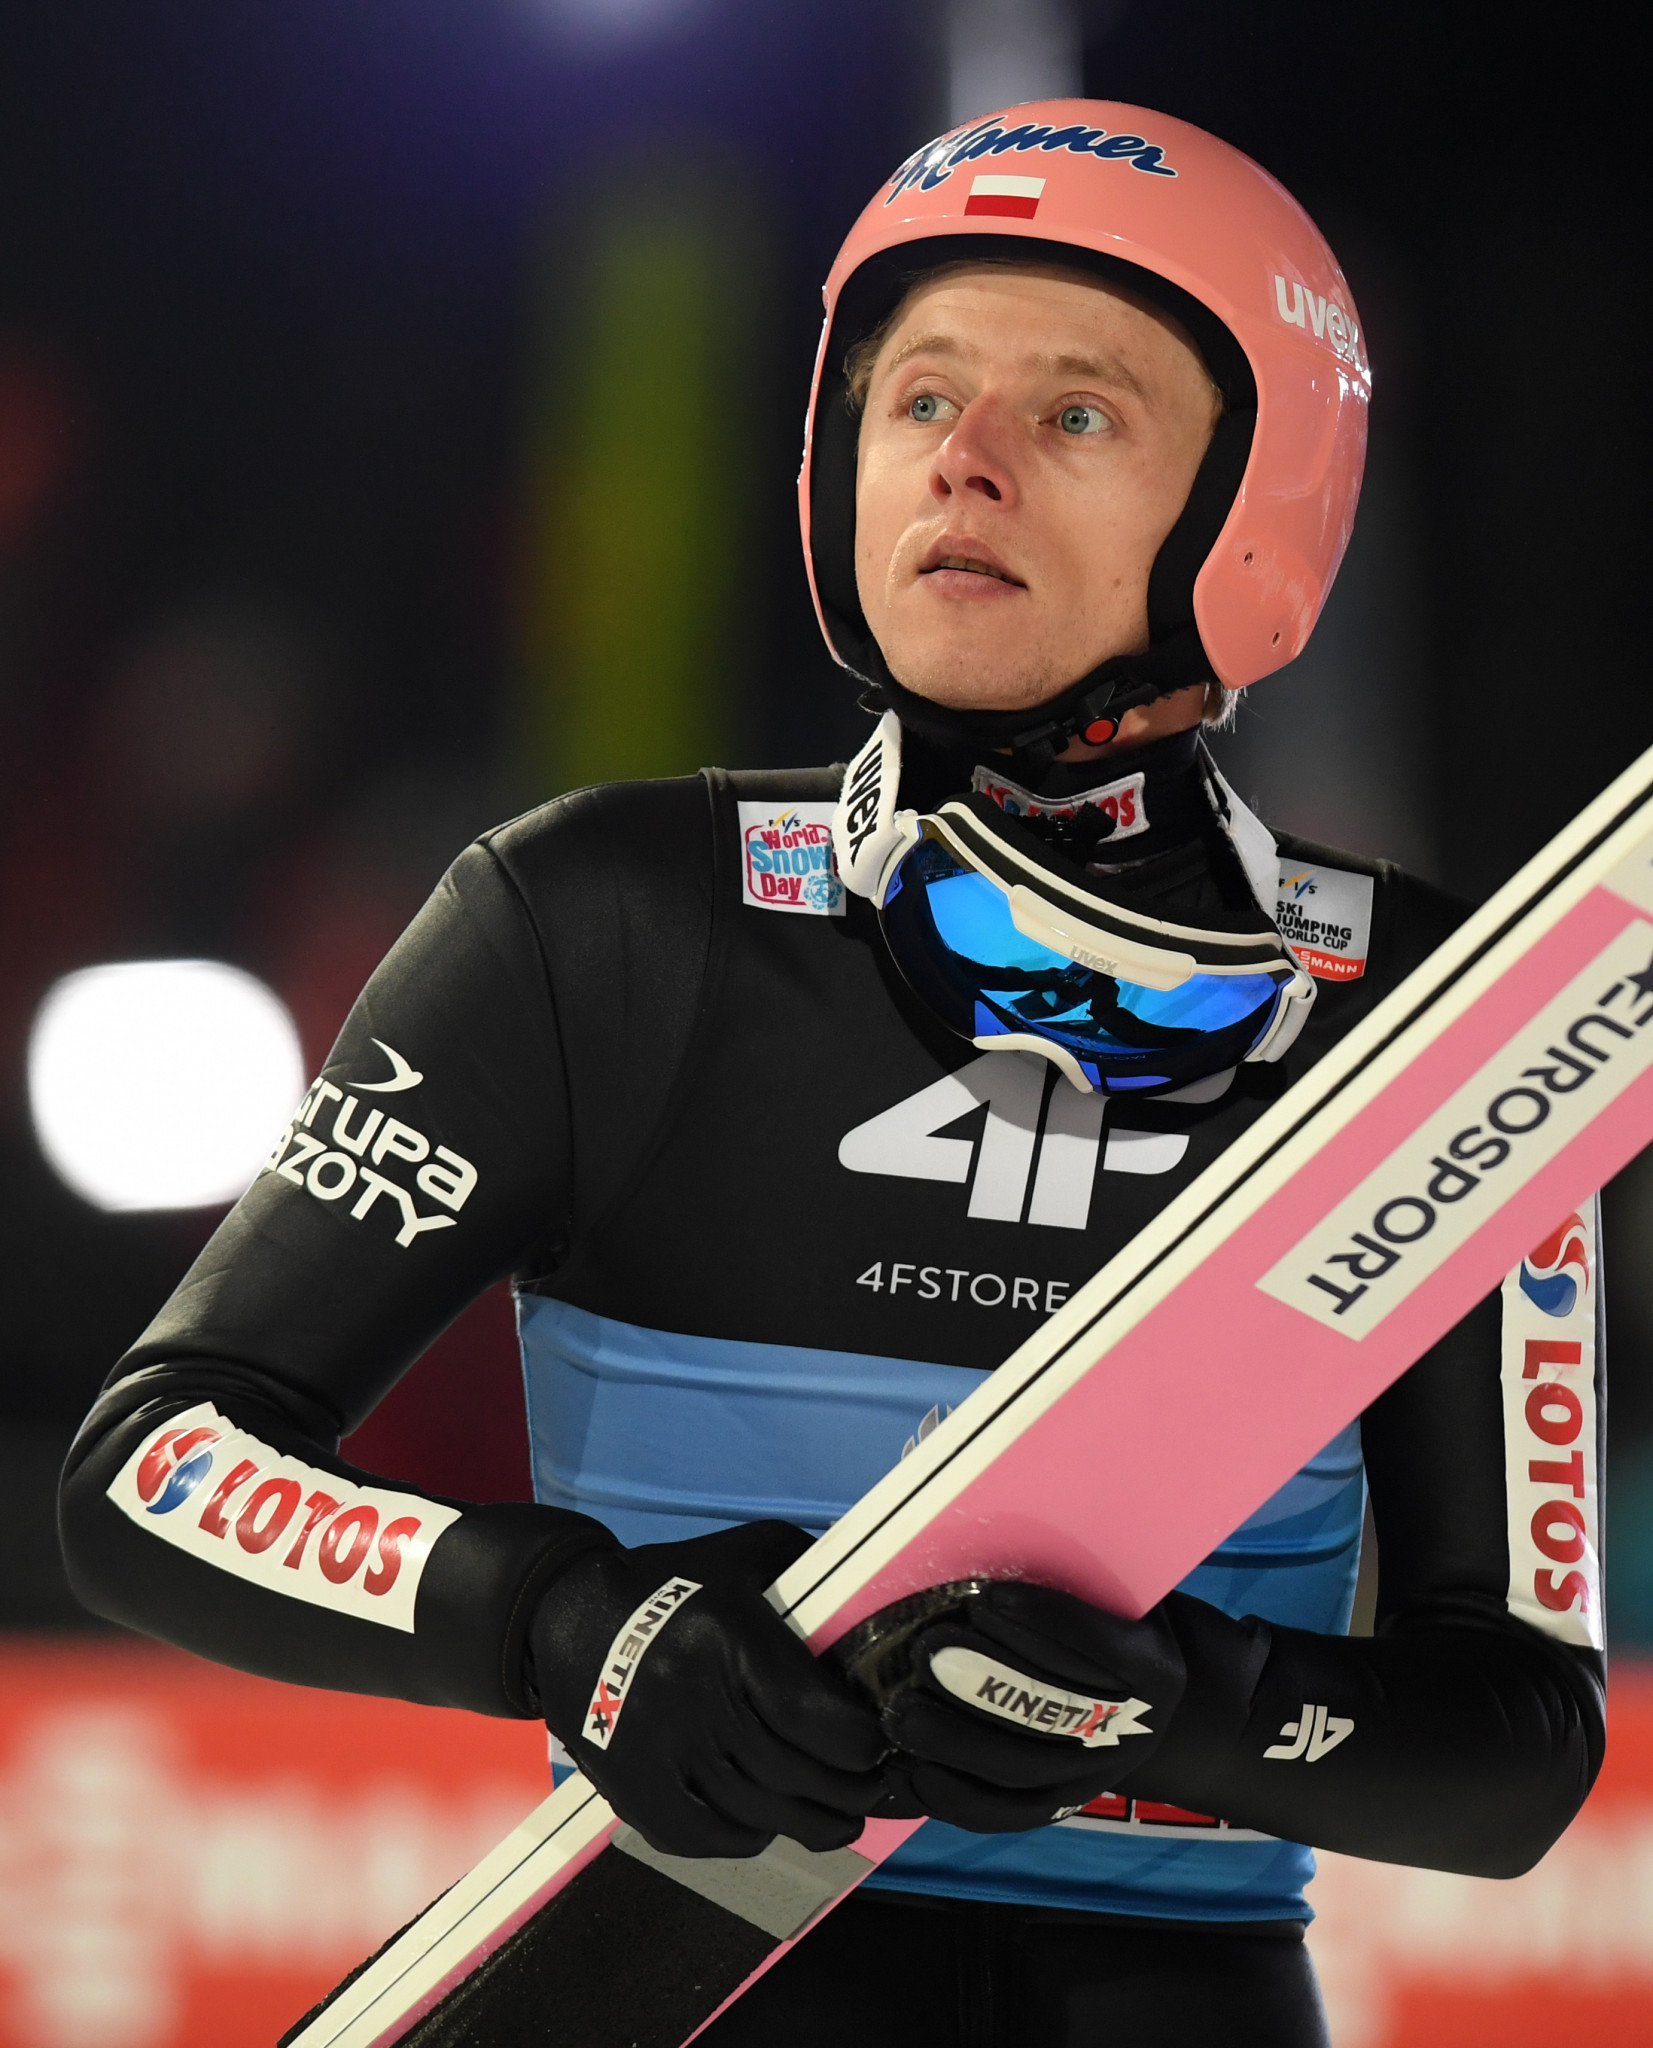 Kubacki set fair to claim Four Hills Tournament title in Bischofshofen after qualifying safely